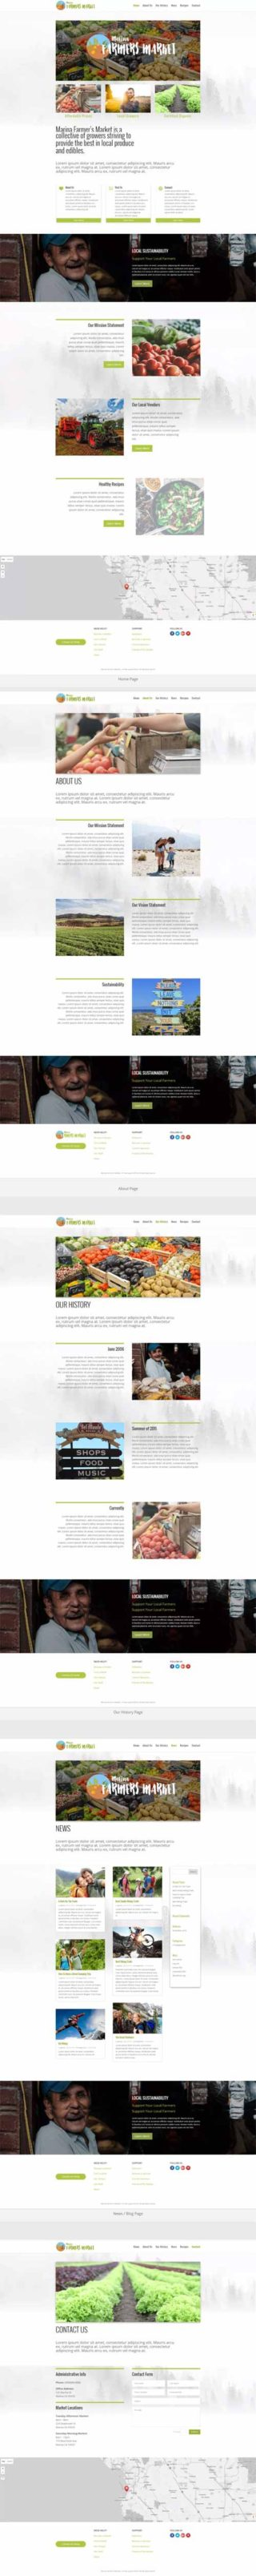 farmers market layout for divi